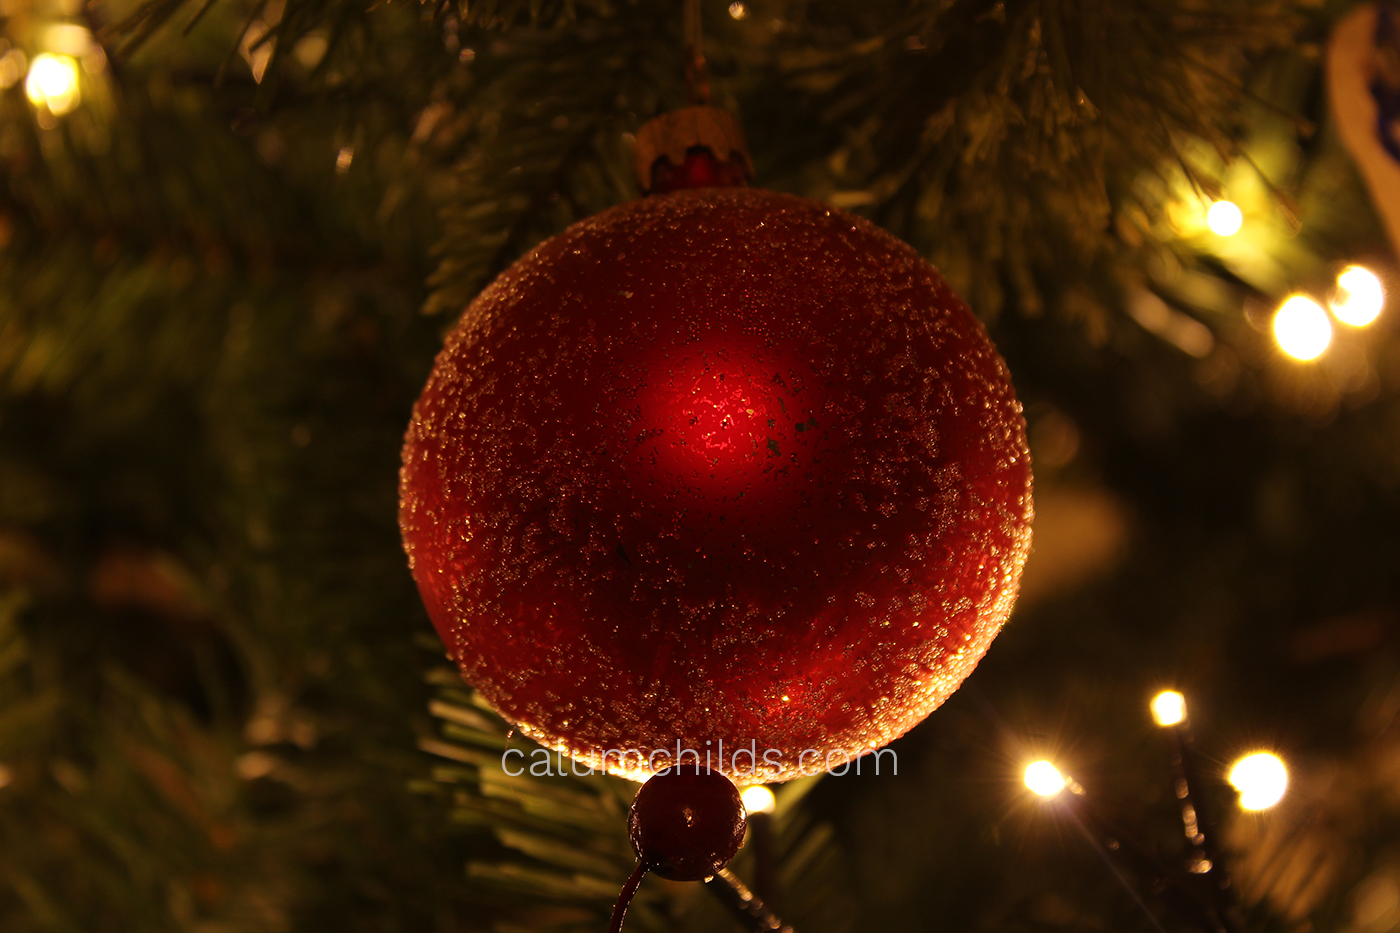 A red bauble is illuminated by some warm Christmas lights on a Christmas tree.